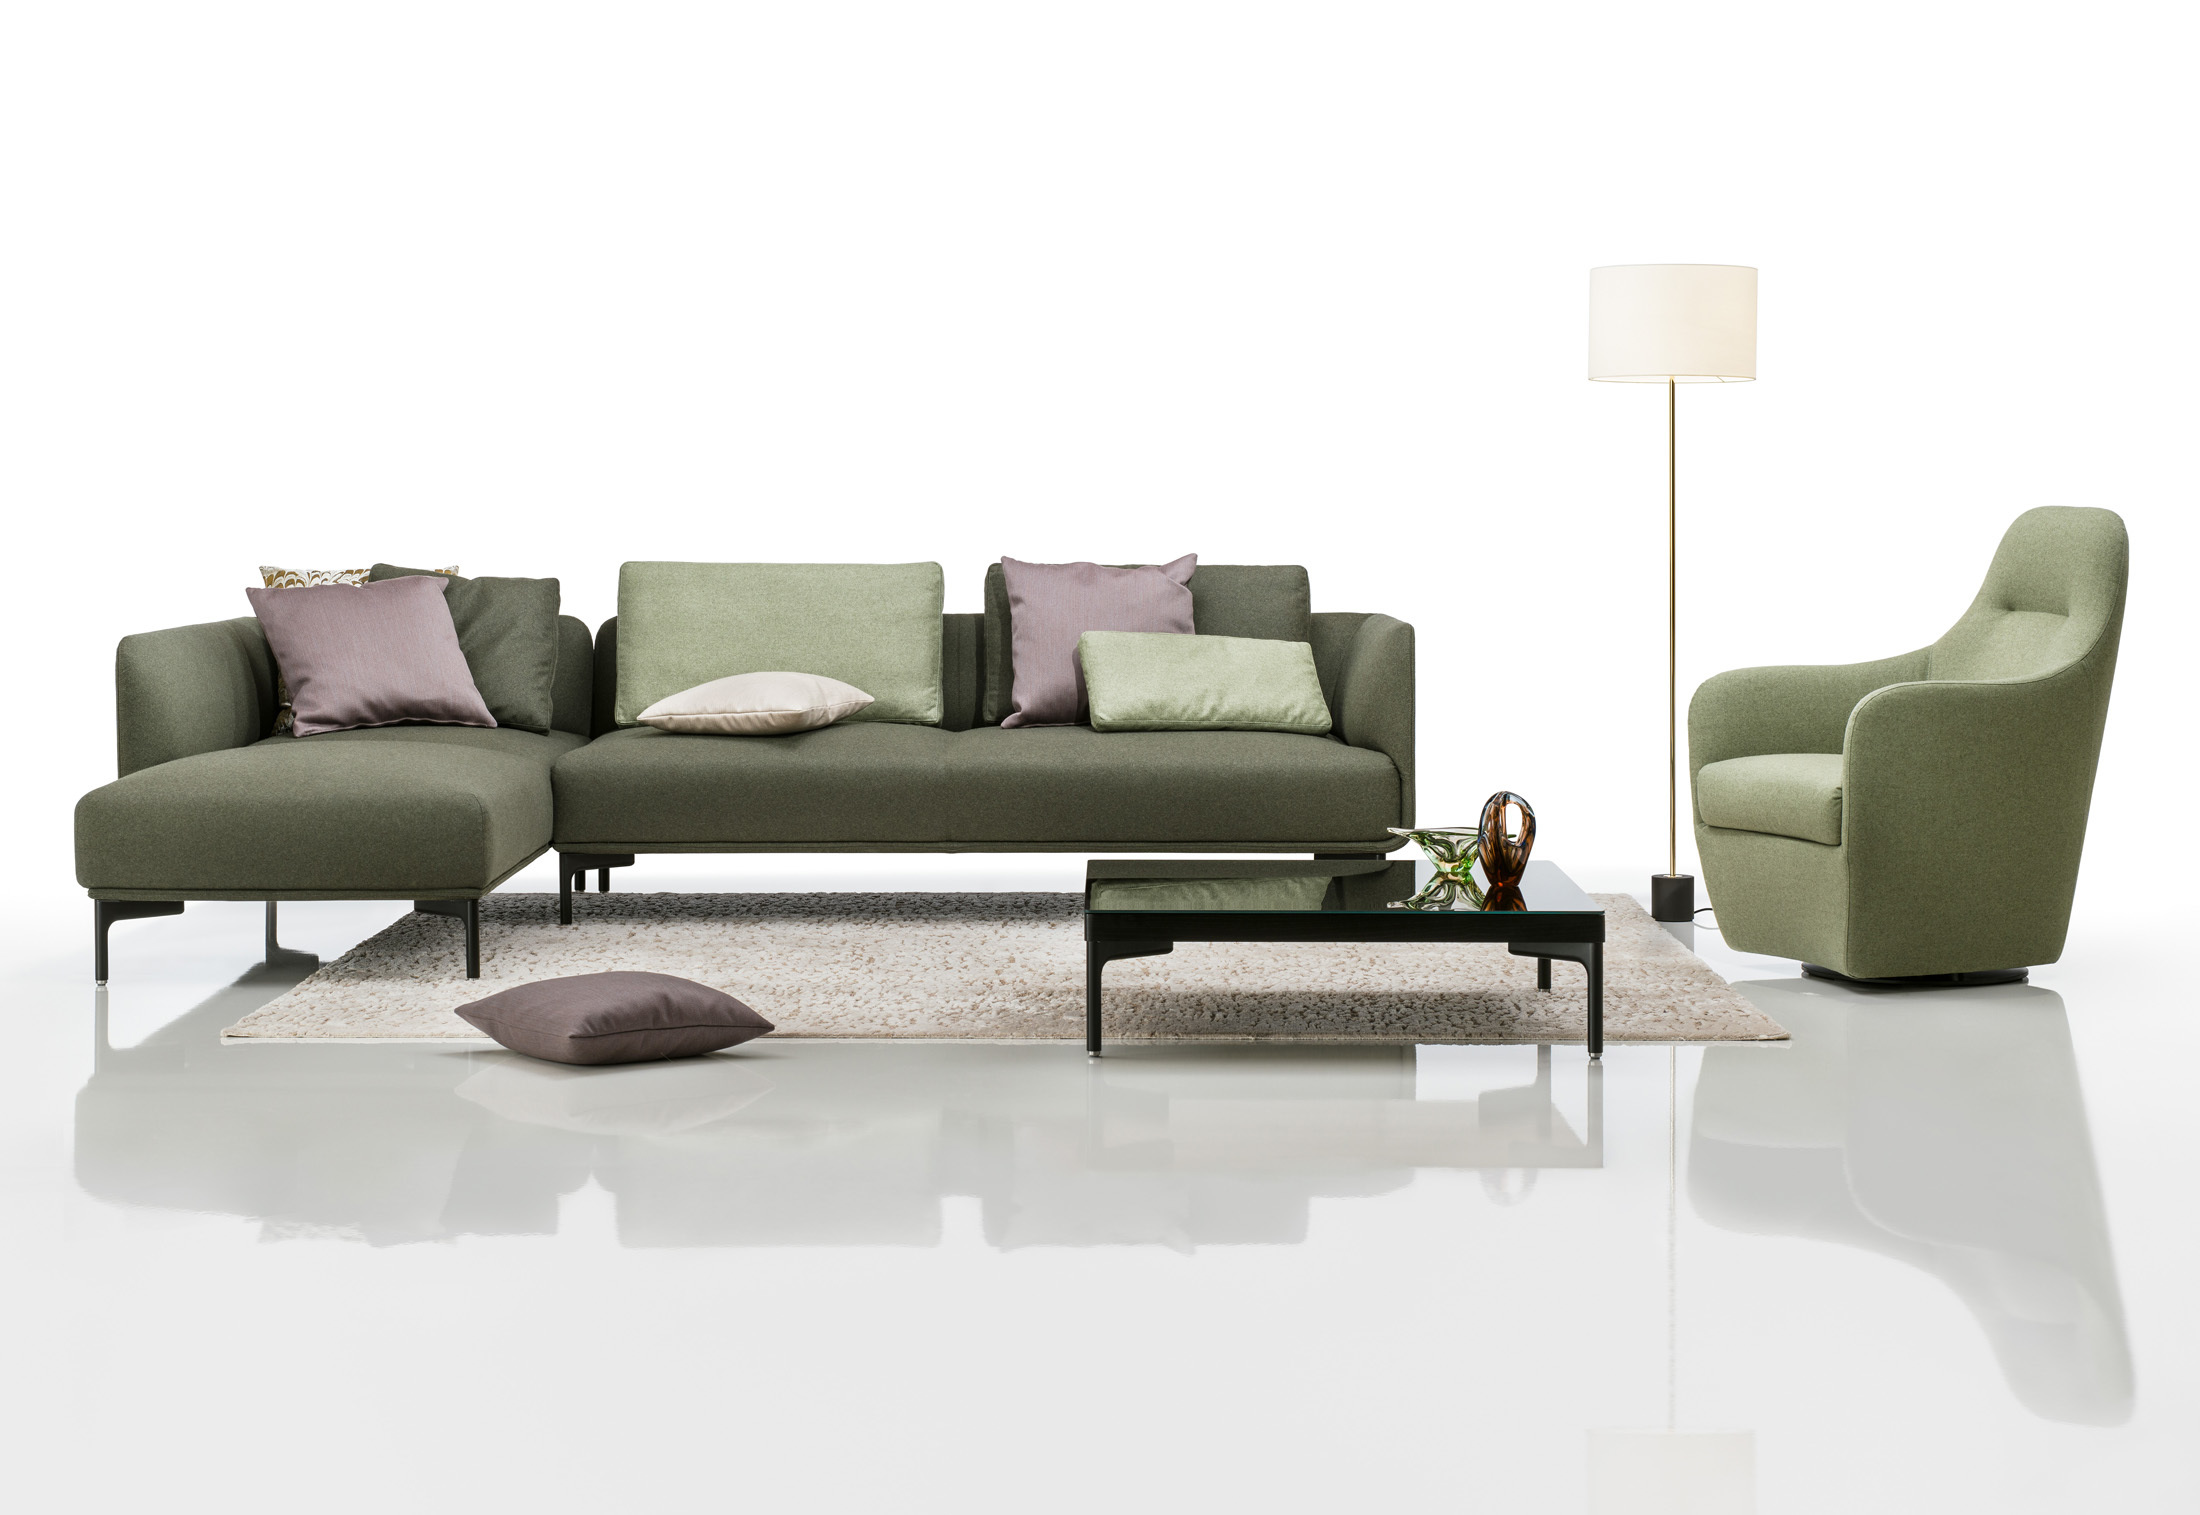 Full Size of Sofa Dhel Sklum Modular Dwell Review Componibile Dhl Packset Modulares Lennon Westwing Ikea System Mit Schlaffunktion Türkis Baxter Walter Knoll Xxxl Blau Wohnzimmer Sofa Dhel